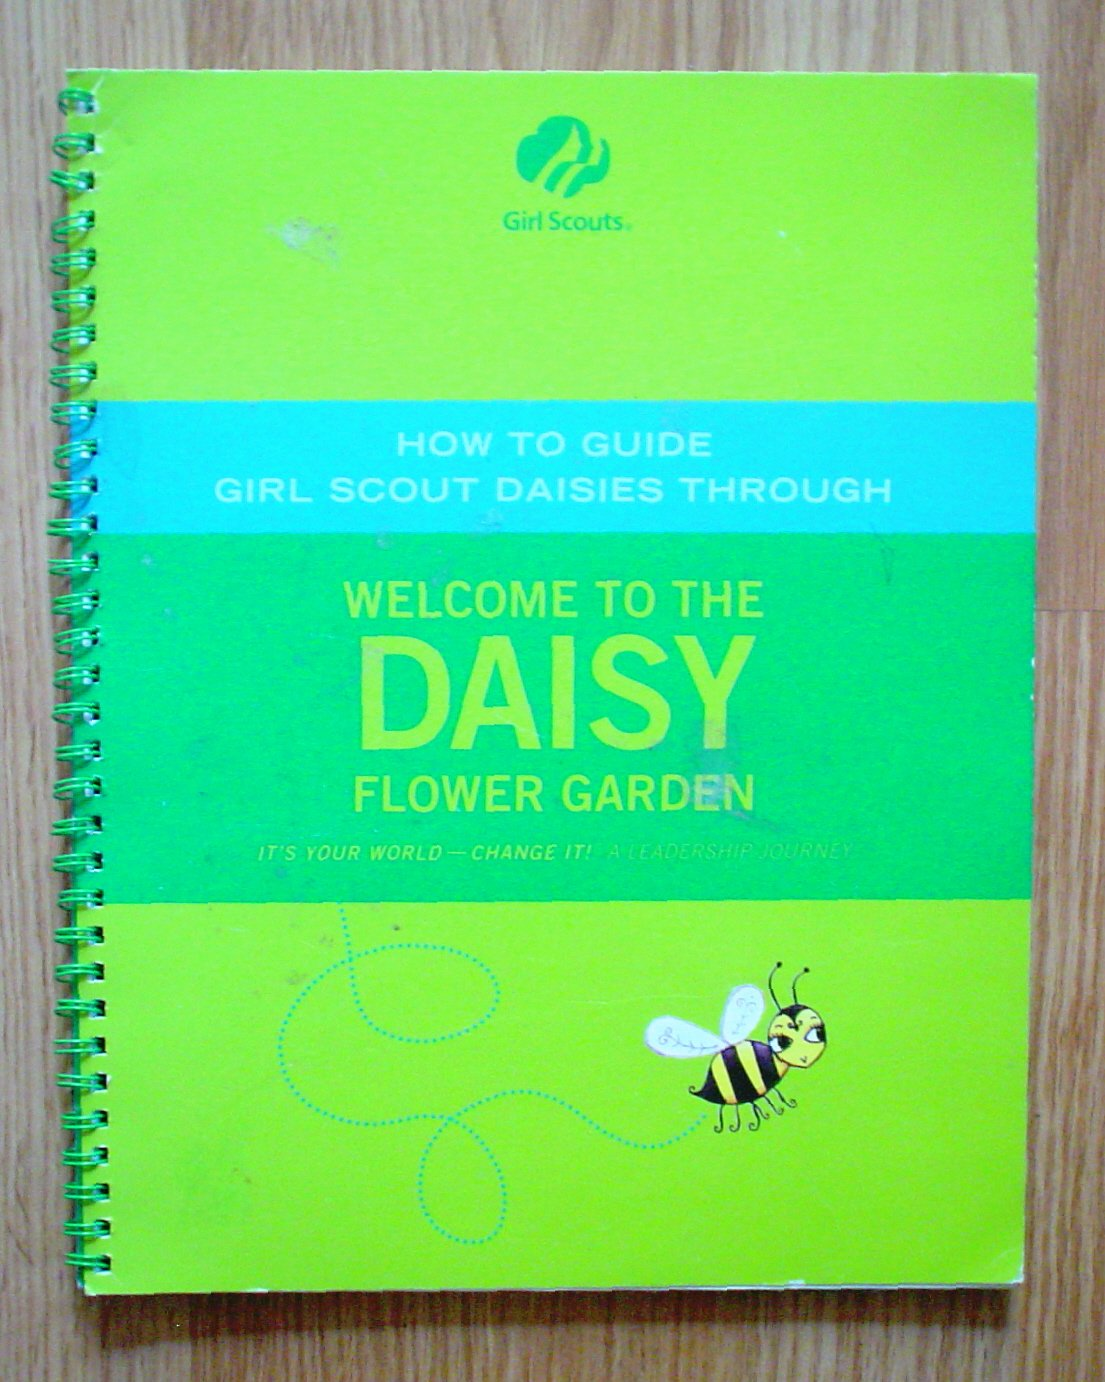 How to guide girl scout daisies through welcome to the daisy flower how to guide girl scout daisies through welcome to the daisy flower garden amazon books izmirmasajfo